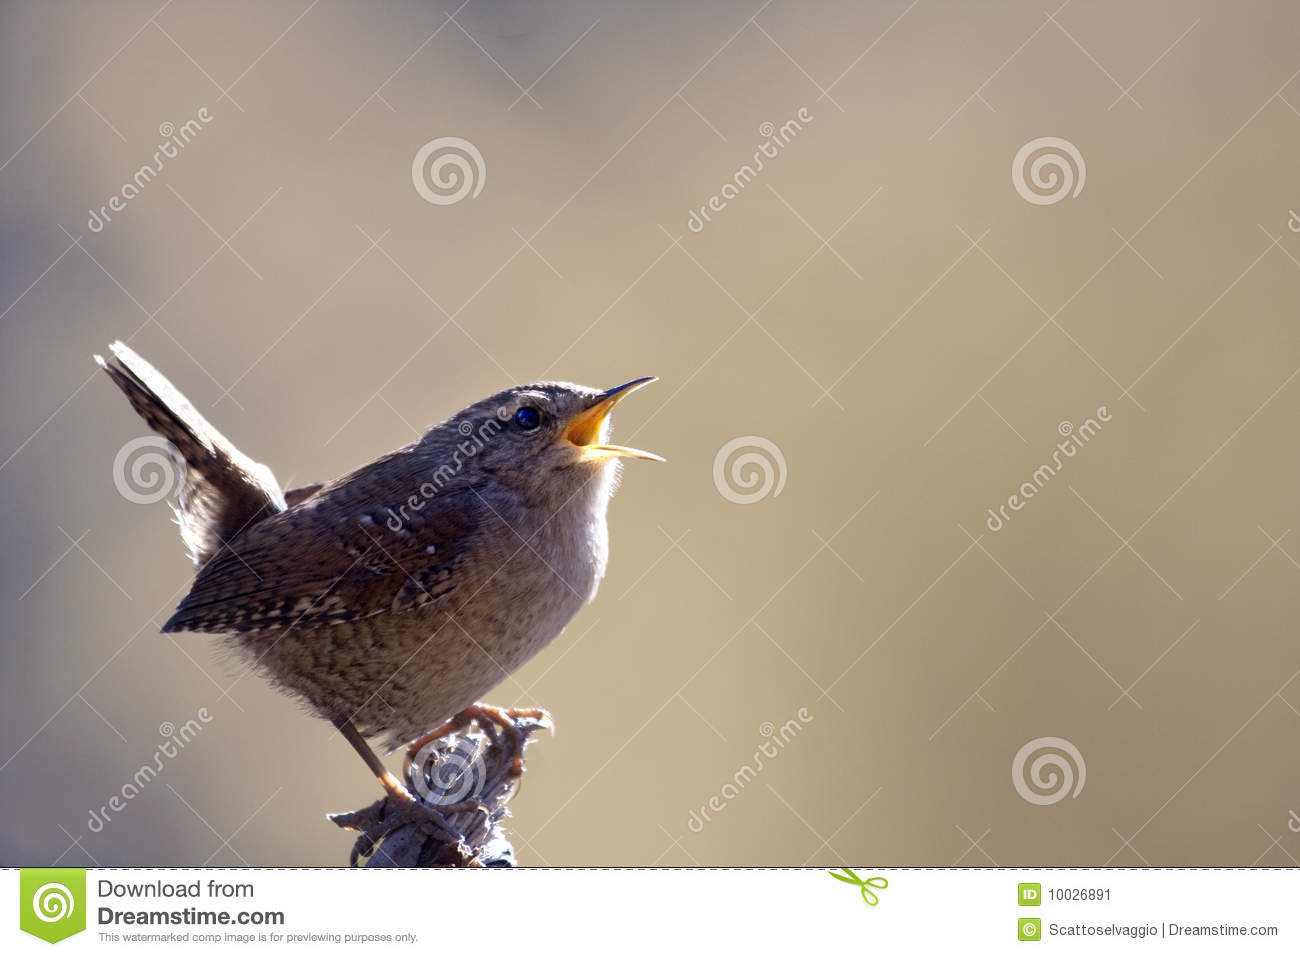 Northern Wren. It is a very small bird, the only one of nearly sixty species in the family that occurs in the Old World. According to European folklore, the Wren is the King of the Birds.